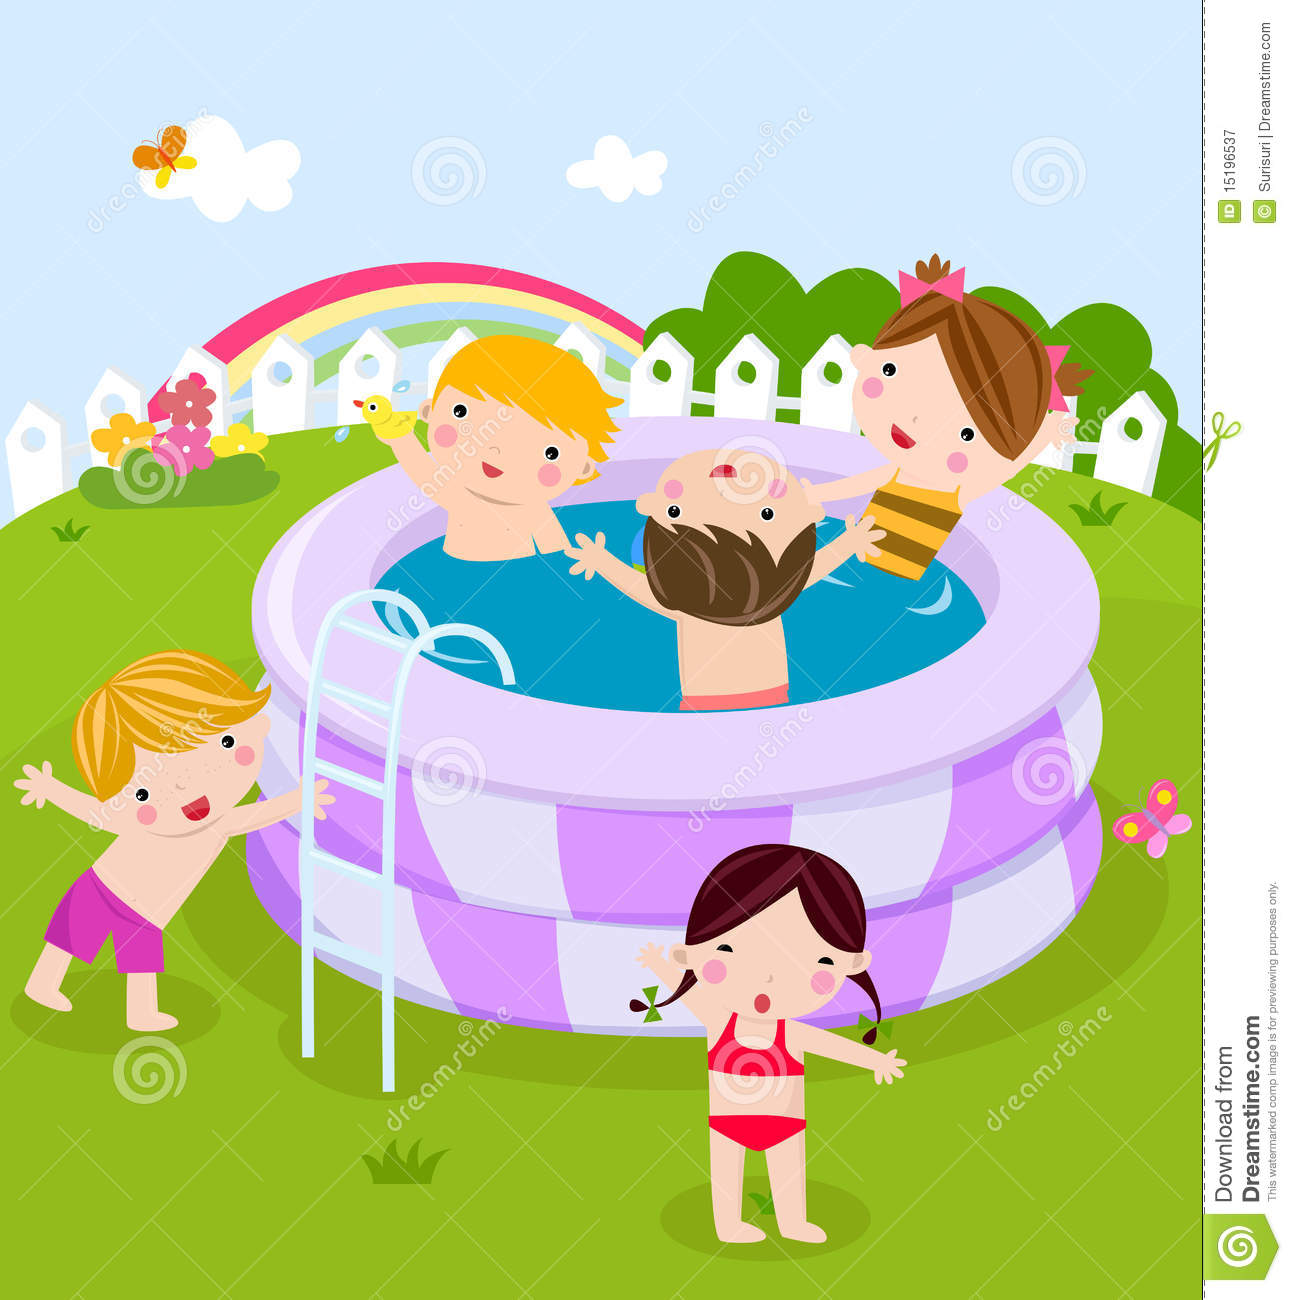 Plastic Swimming Pool With Kids Stock Vector ...